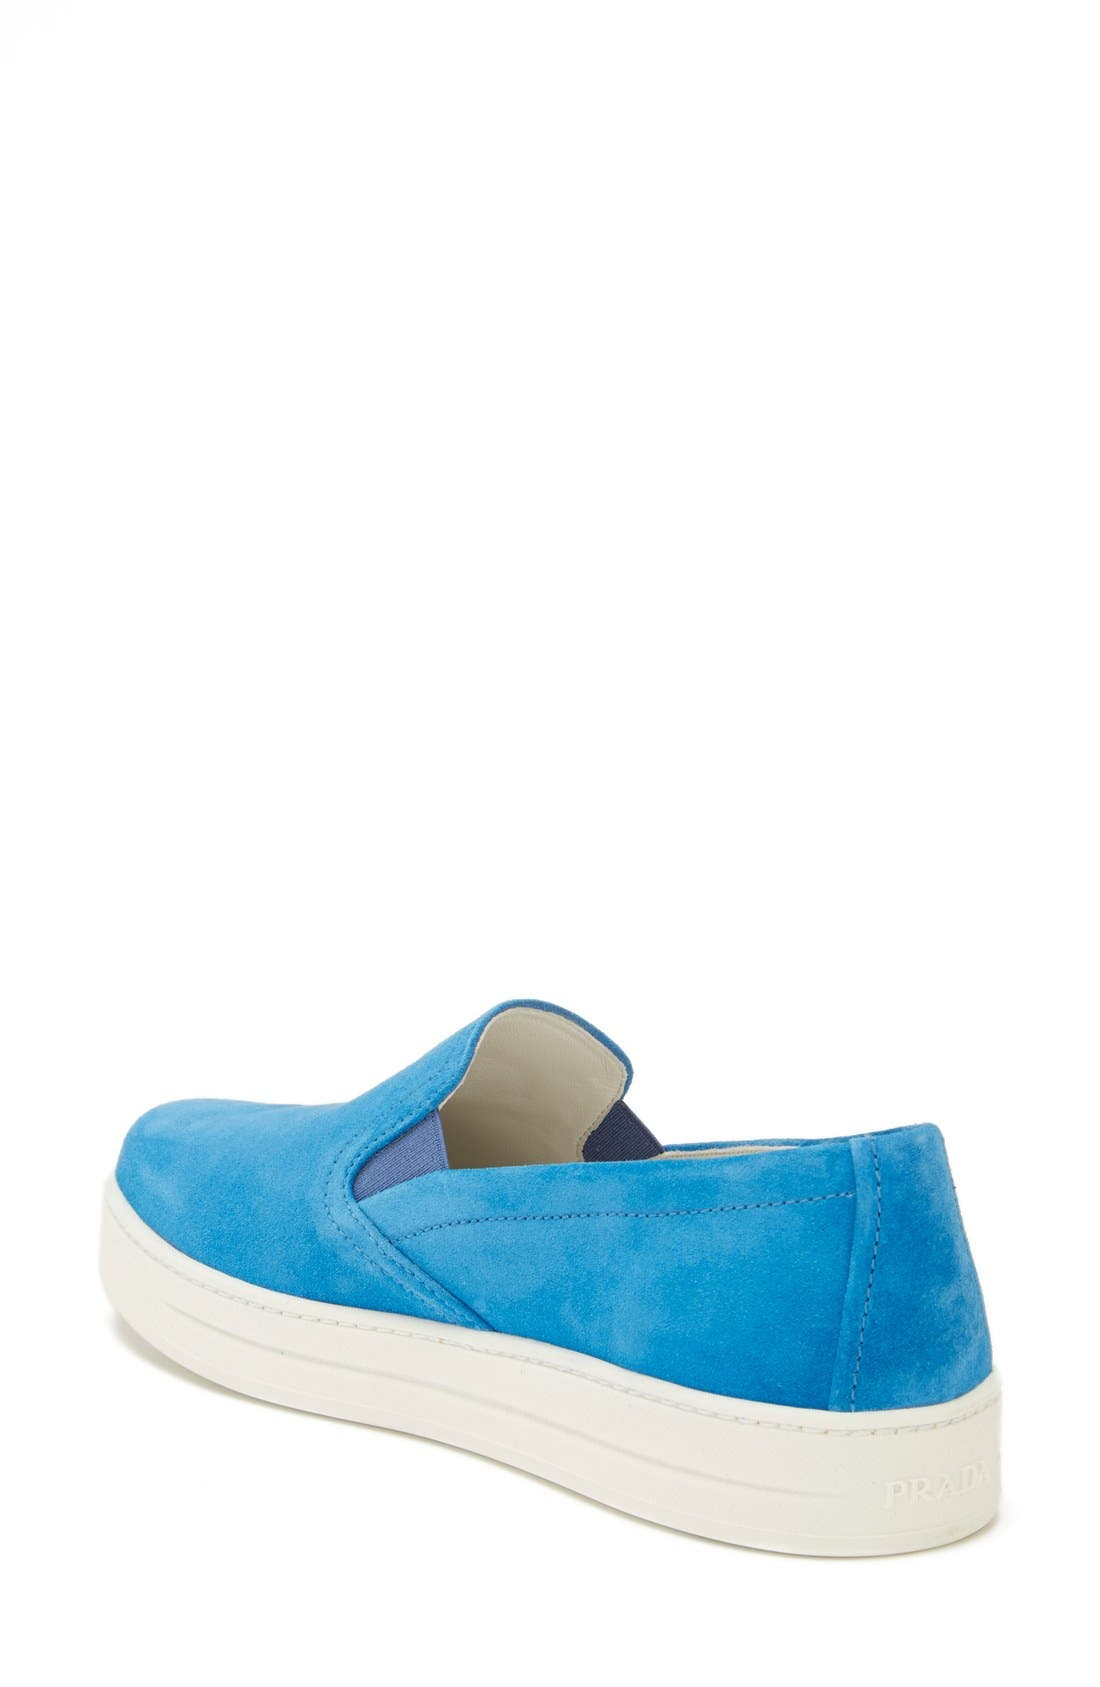 Slip-On Sneaker,                             Alternate thumbnail 79, color,